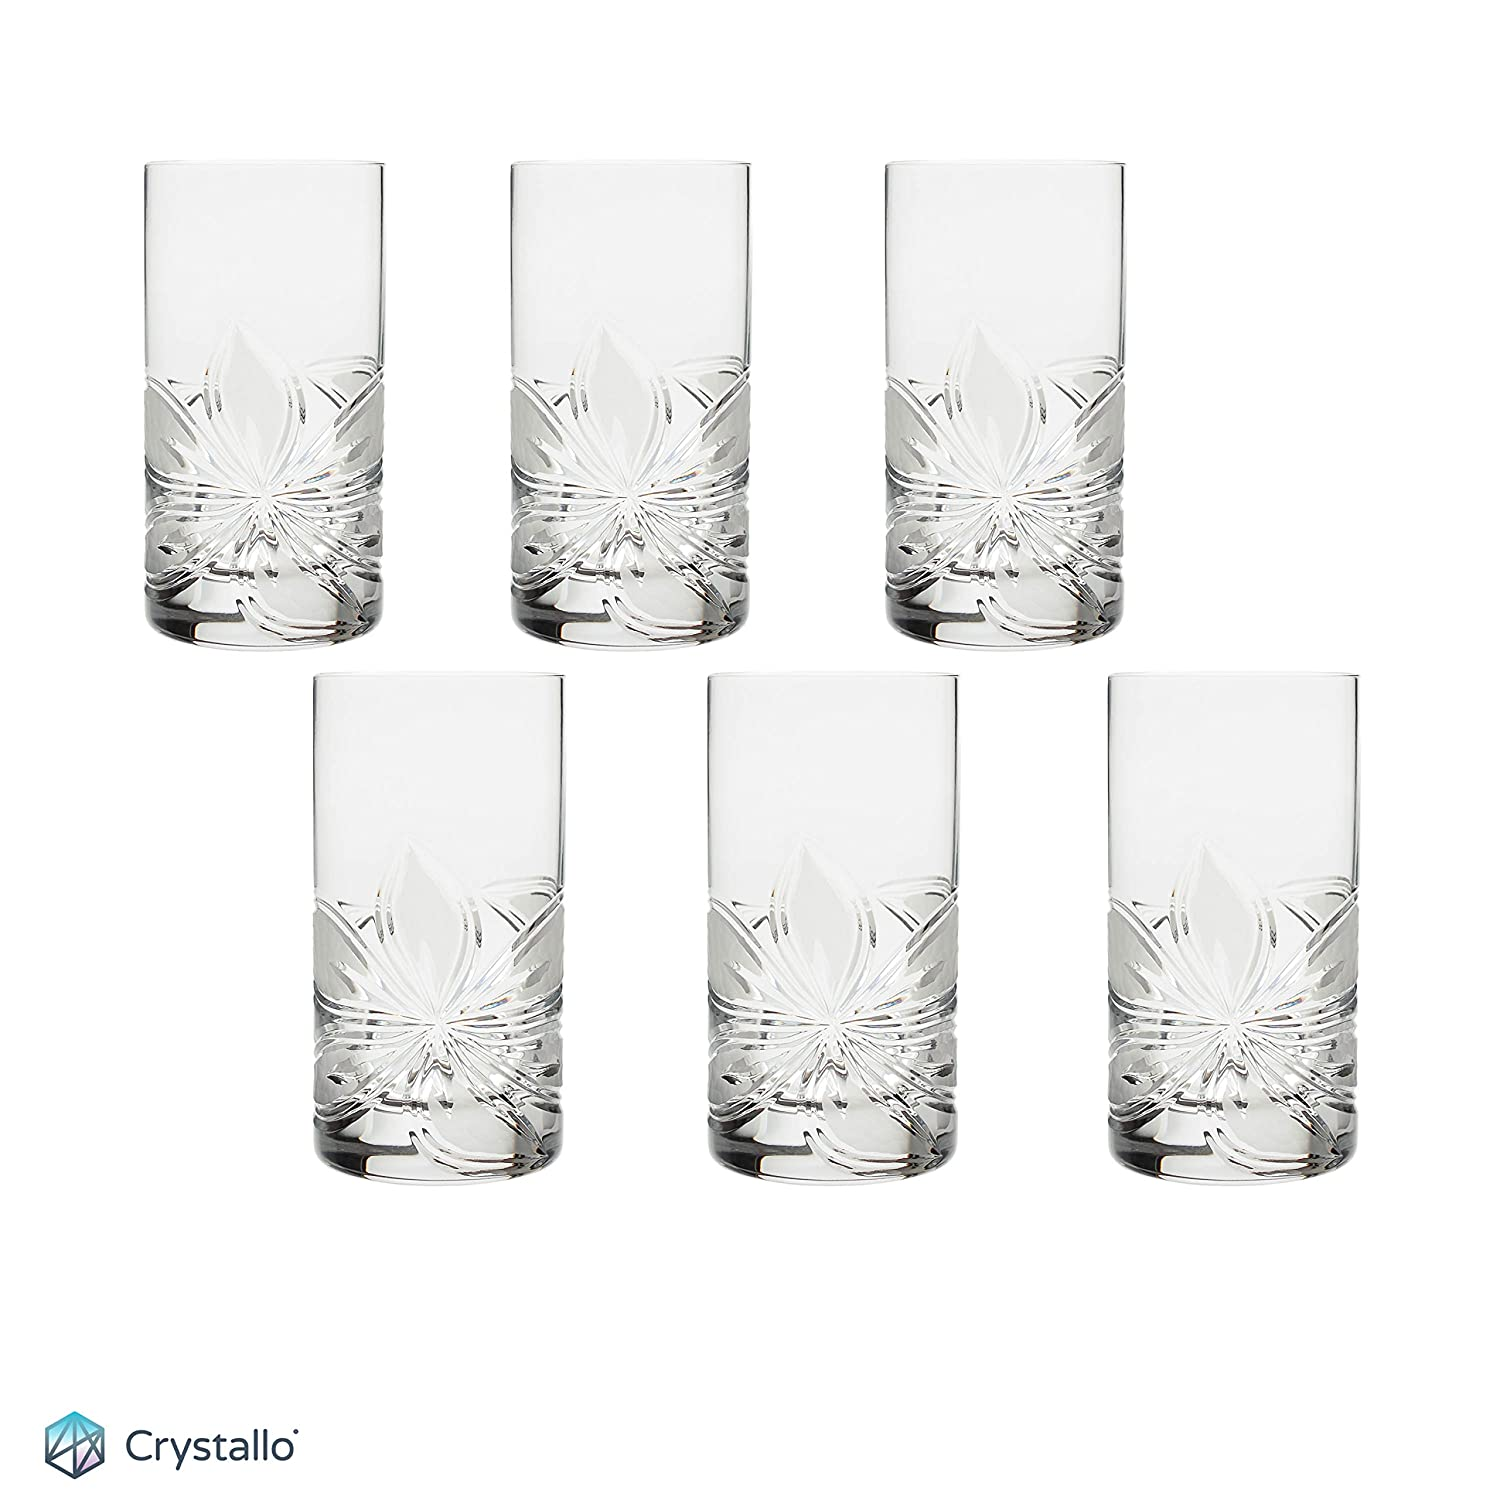 Orchidea Crystal Highball Glass 12oz, Set of 6 (Gift Boxed) Crystallo BG302OR-6